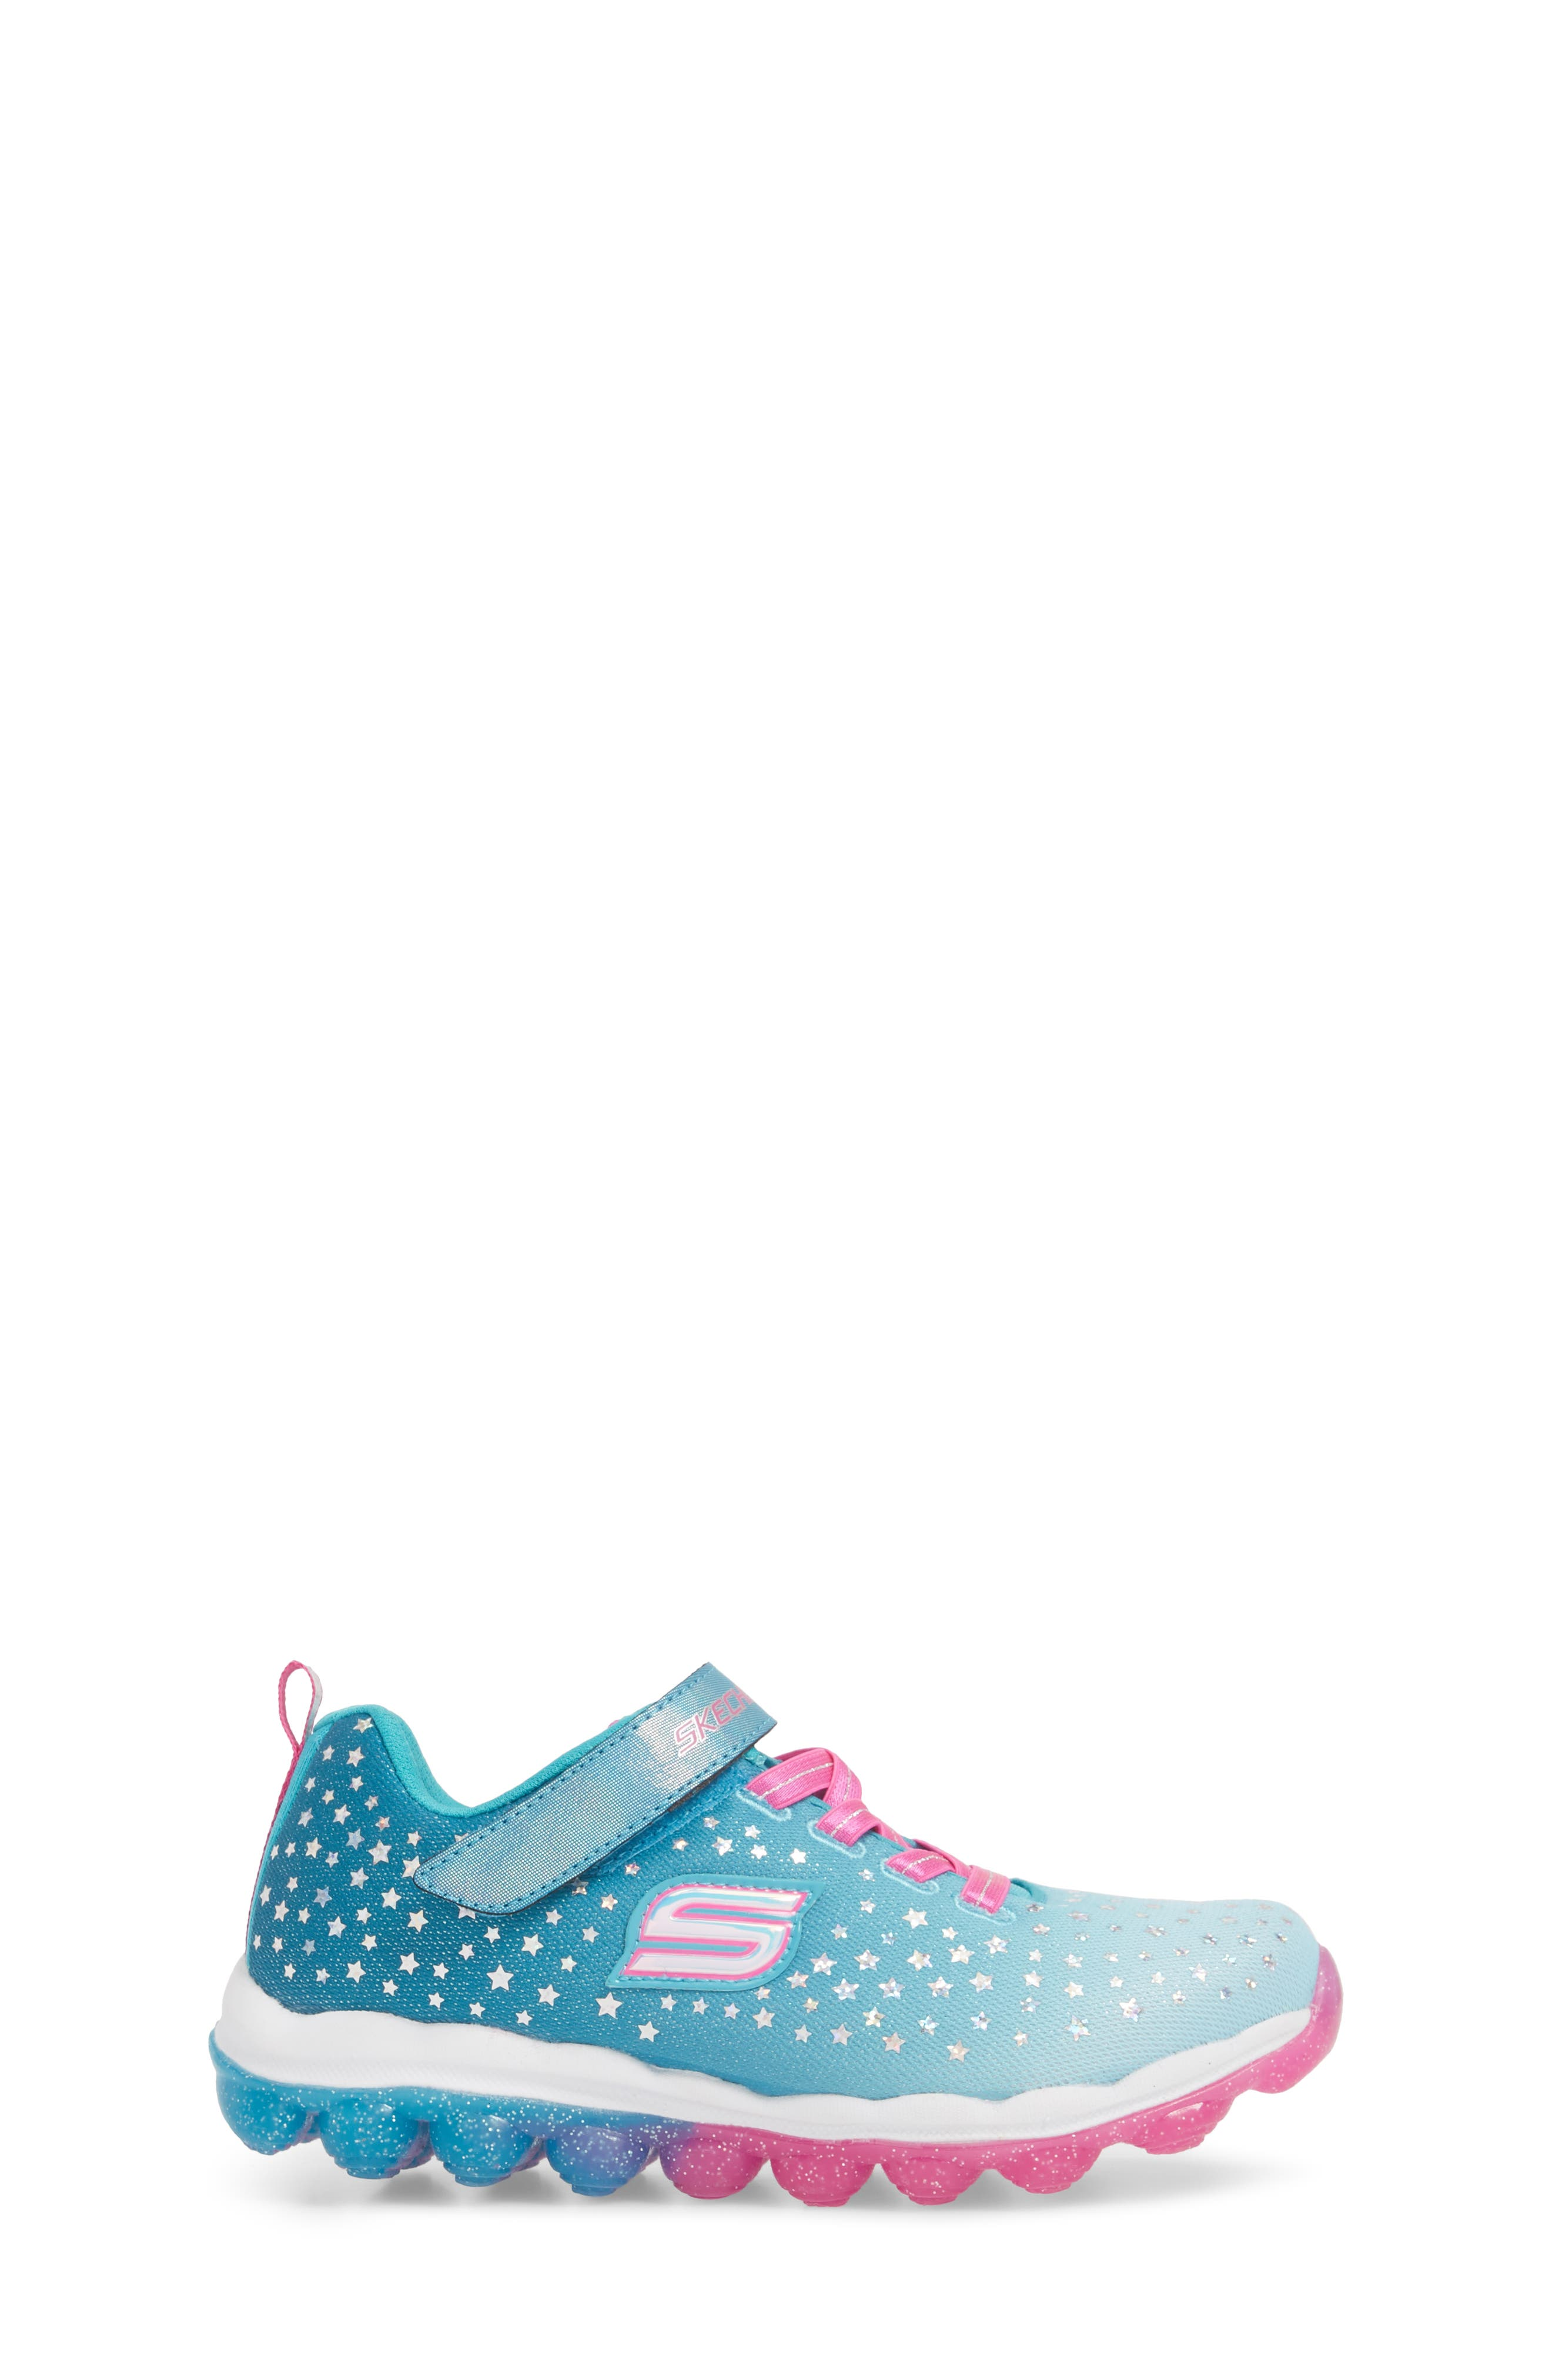 Skech-Air Ultra Glam It Up Sneaker,                             Alternate thumbnail 3, color,                             425